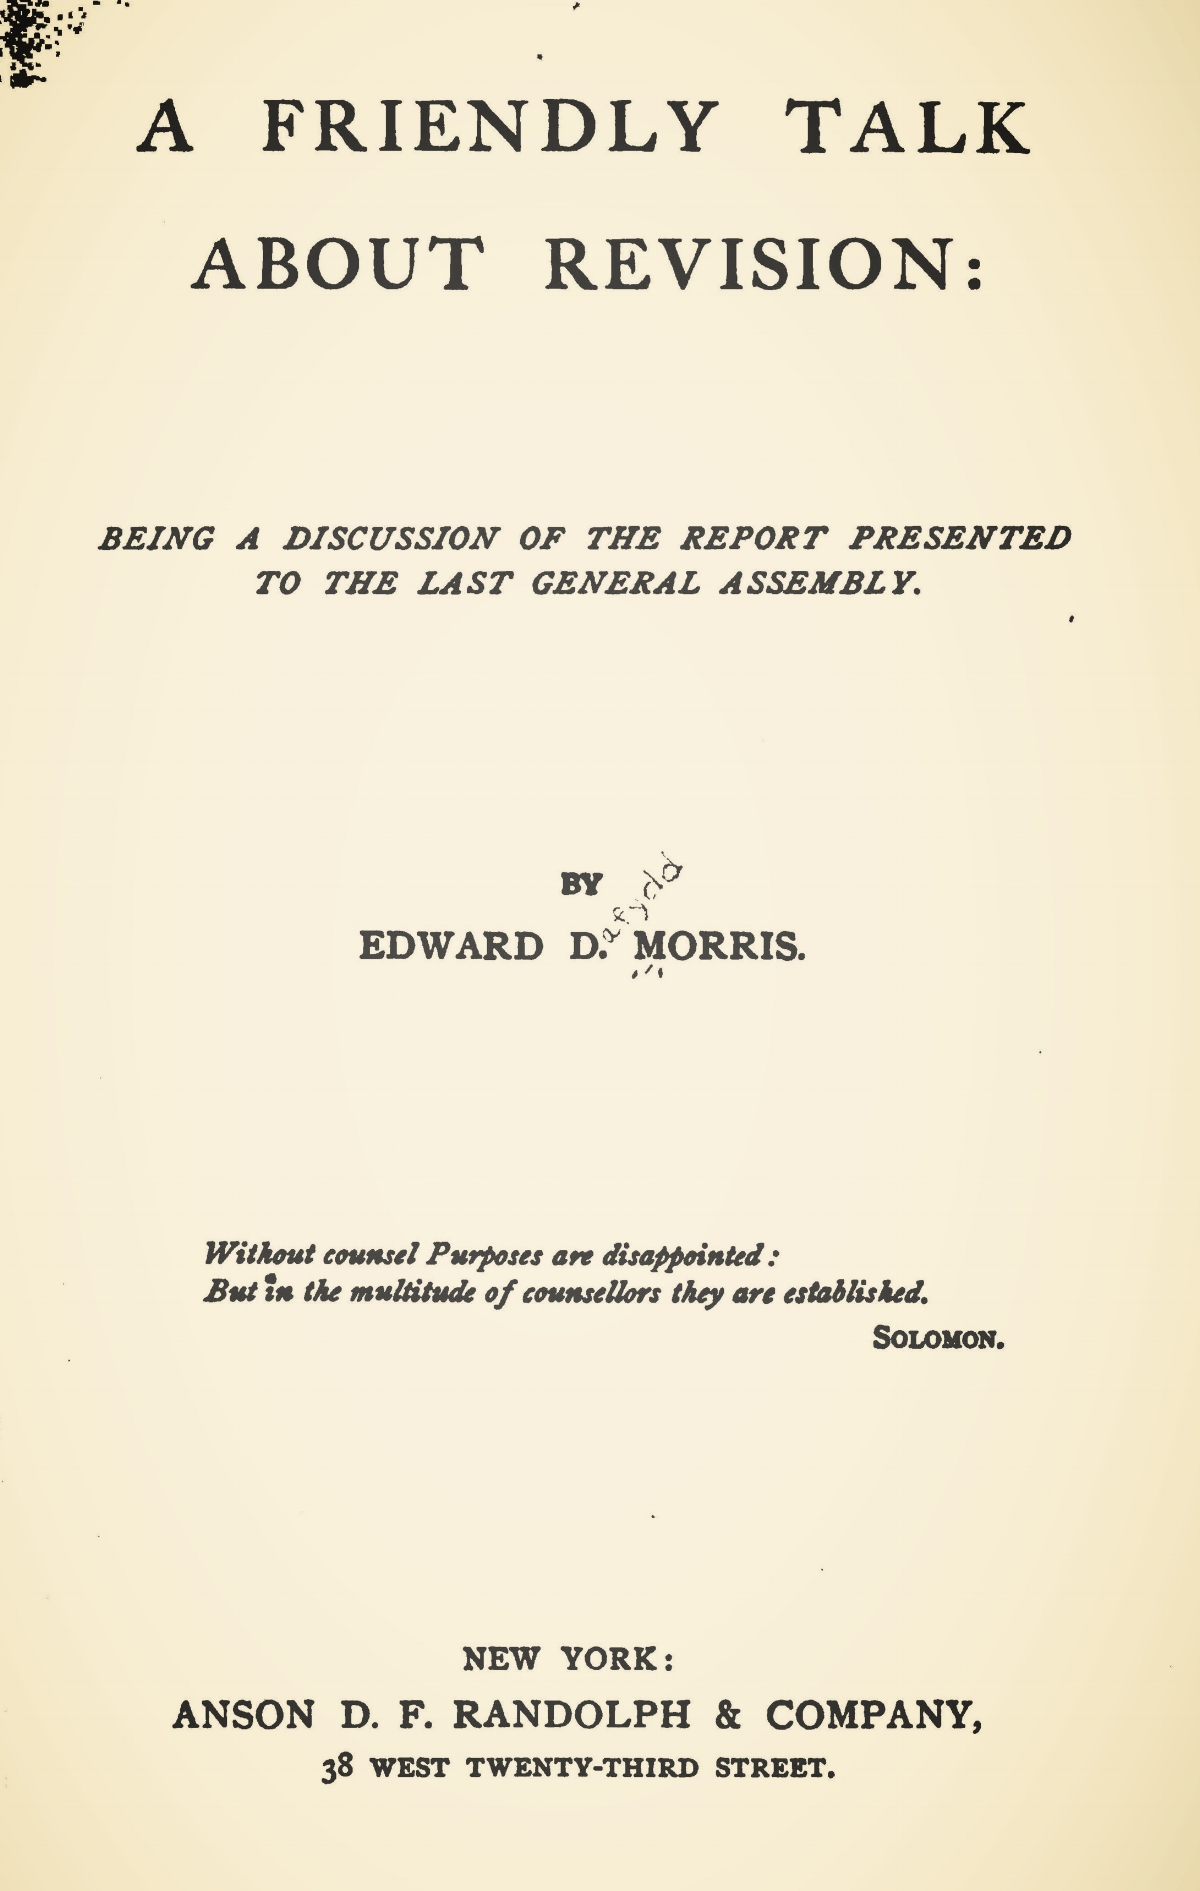 Morris, Edward Dafydd, A Friendly Talk About Revision Title Page.jpg